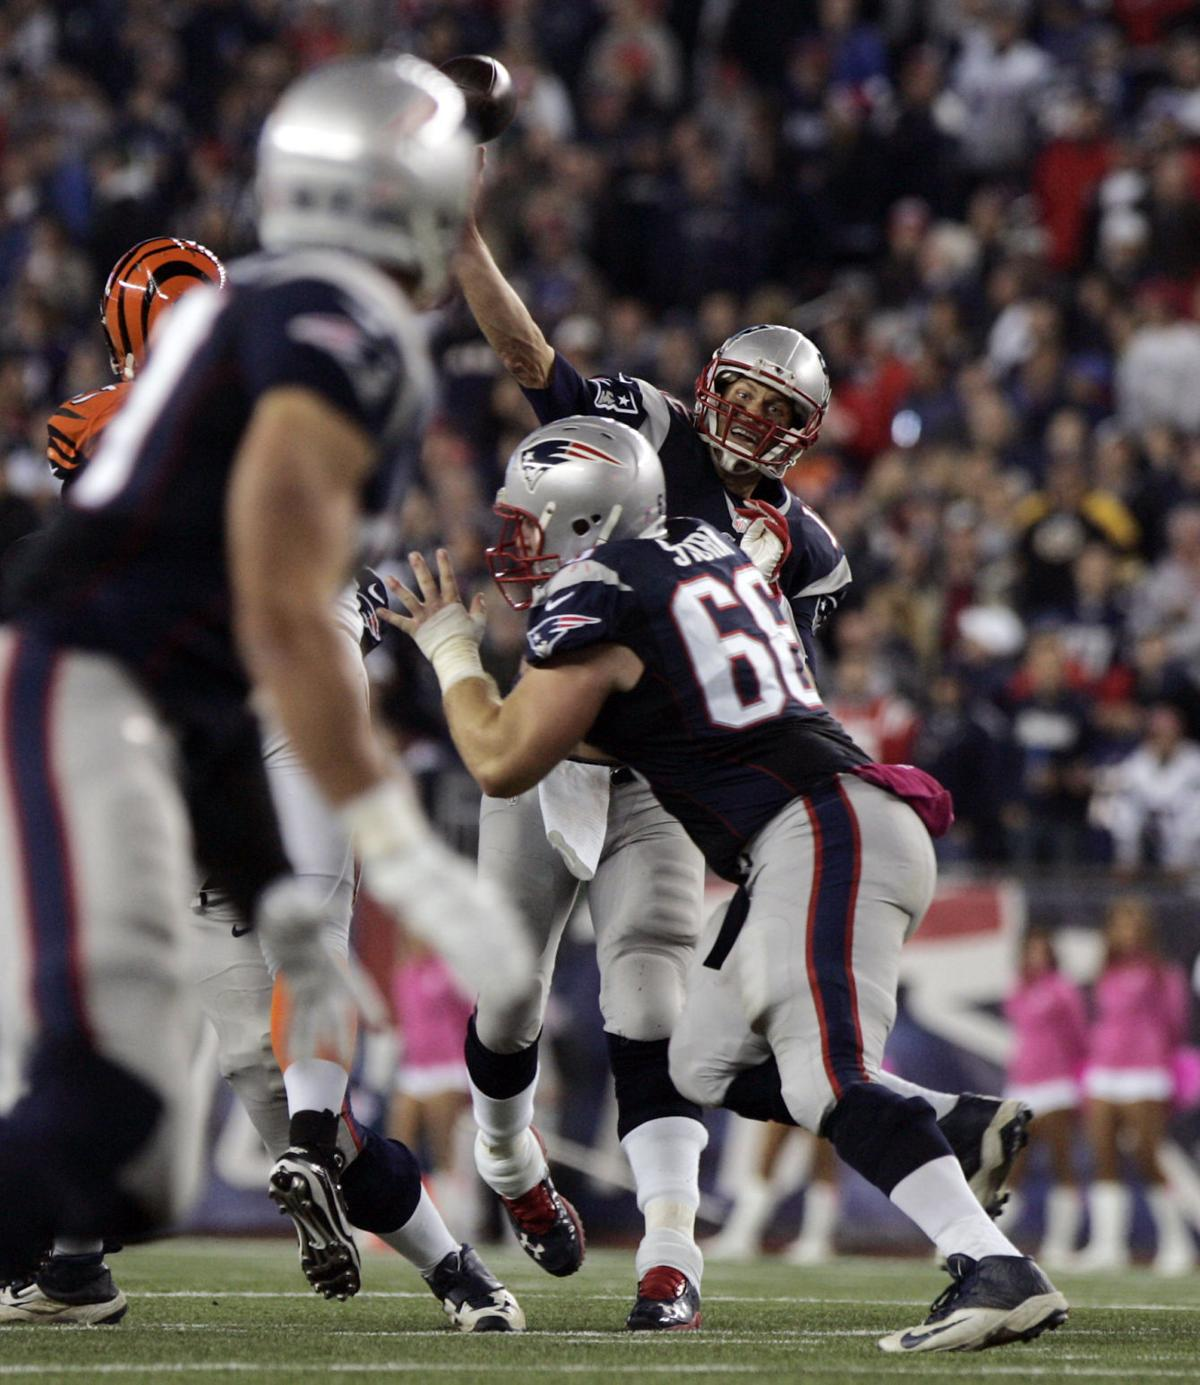 New England Patriots quarterback Tom Brady rifles a pass over the middle to tight end Rob Gronkowski at the end of the second quarter of play.